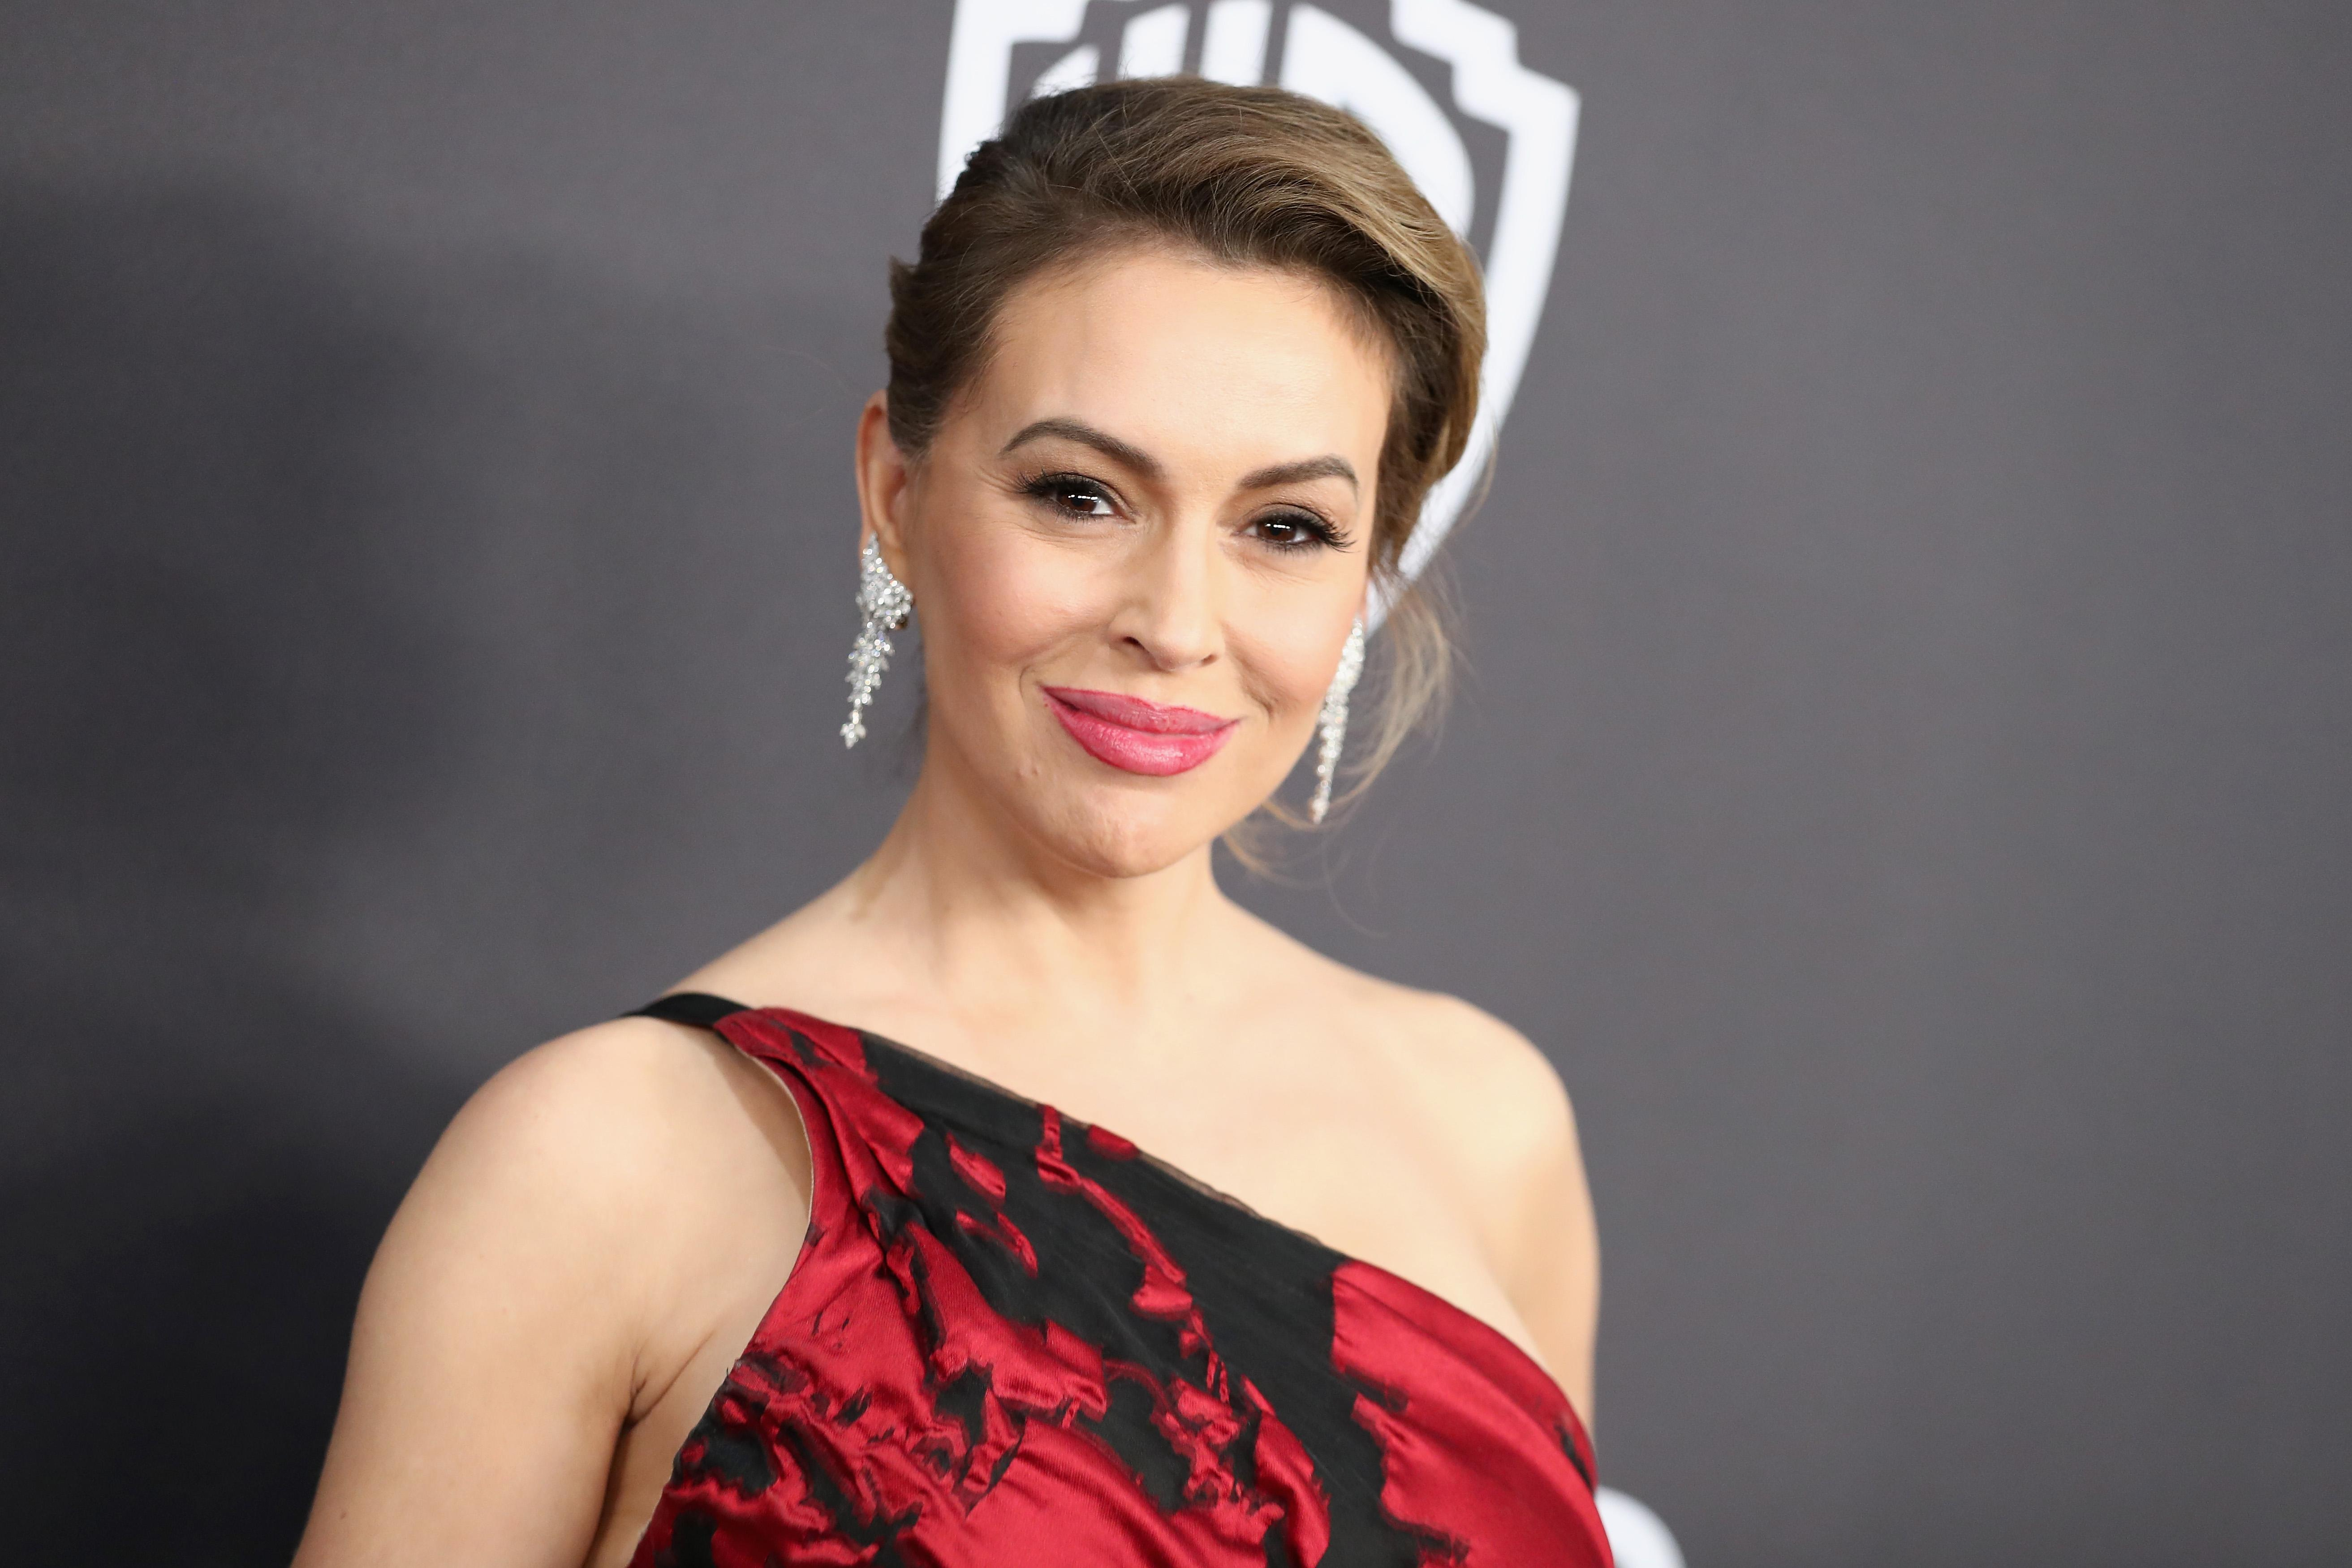 Alyssa Milano Reveals Findings Of Southwest Key Inquiry